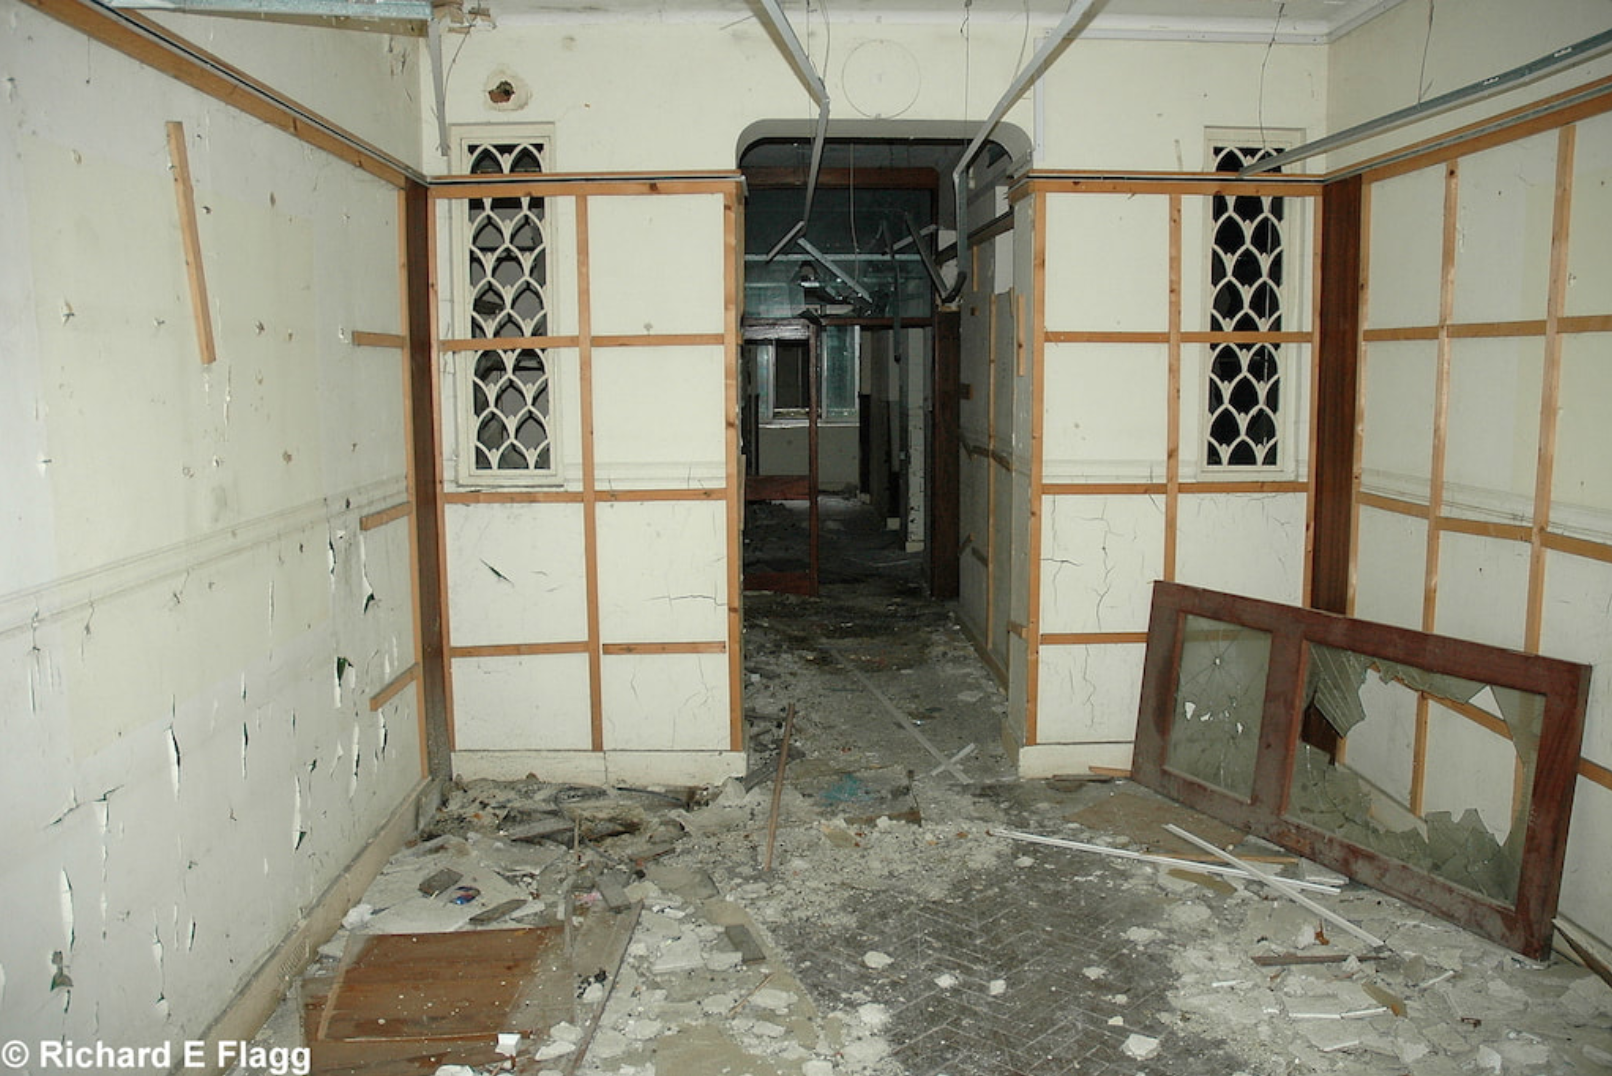 009Station Headquarters interior (Building 81) - 30 November 2008.png